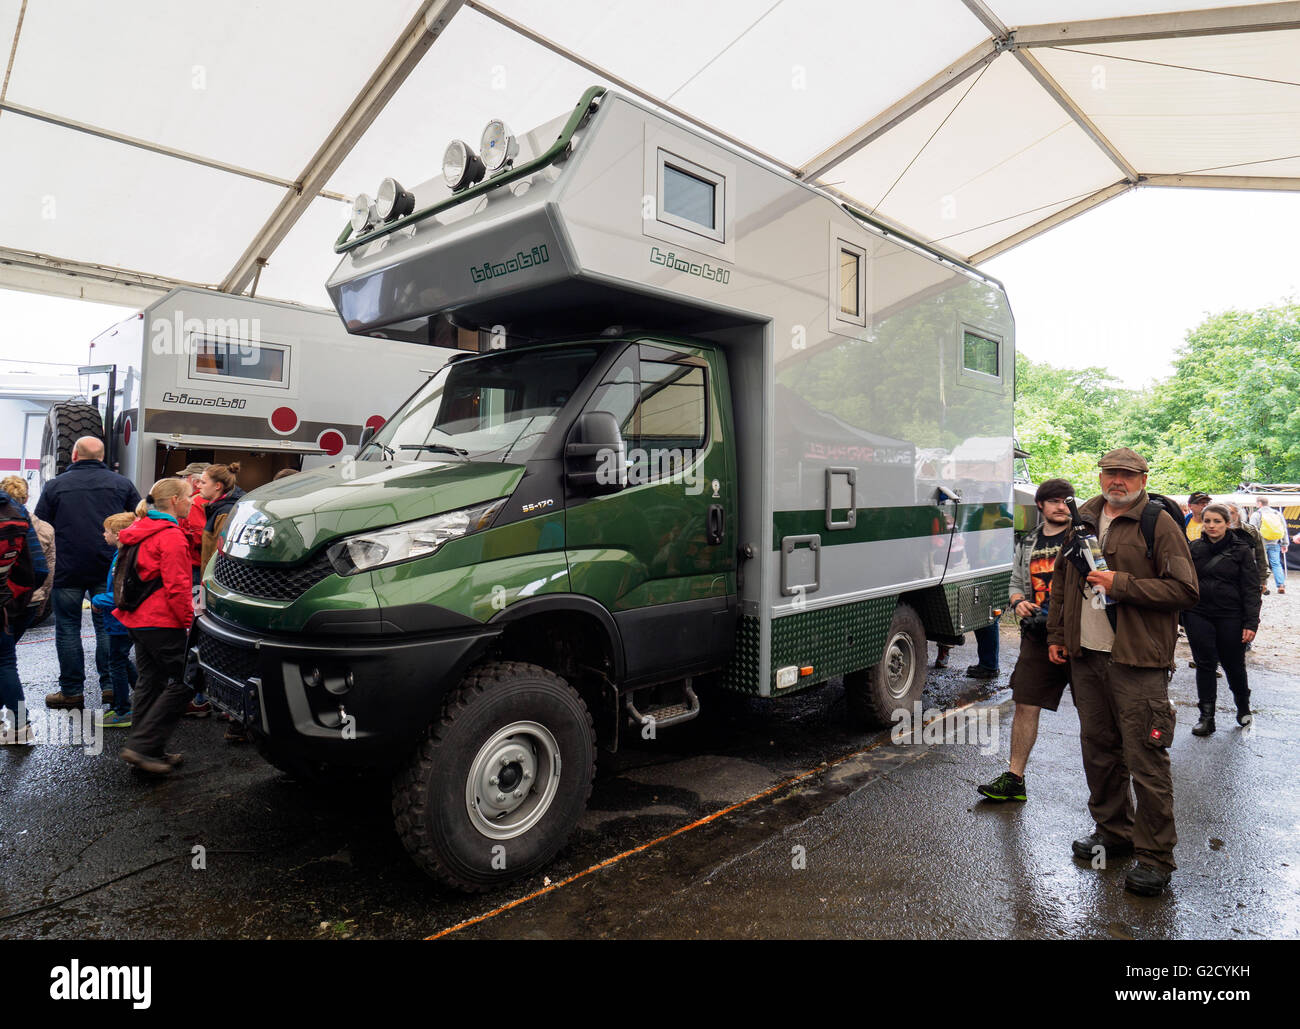 An expedition vehicle based on a Iveco car can be seen at the off-road fair in Bad Kissingen, Germany, 27 May 2016. - Stock Image